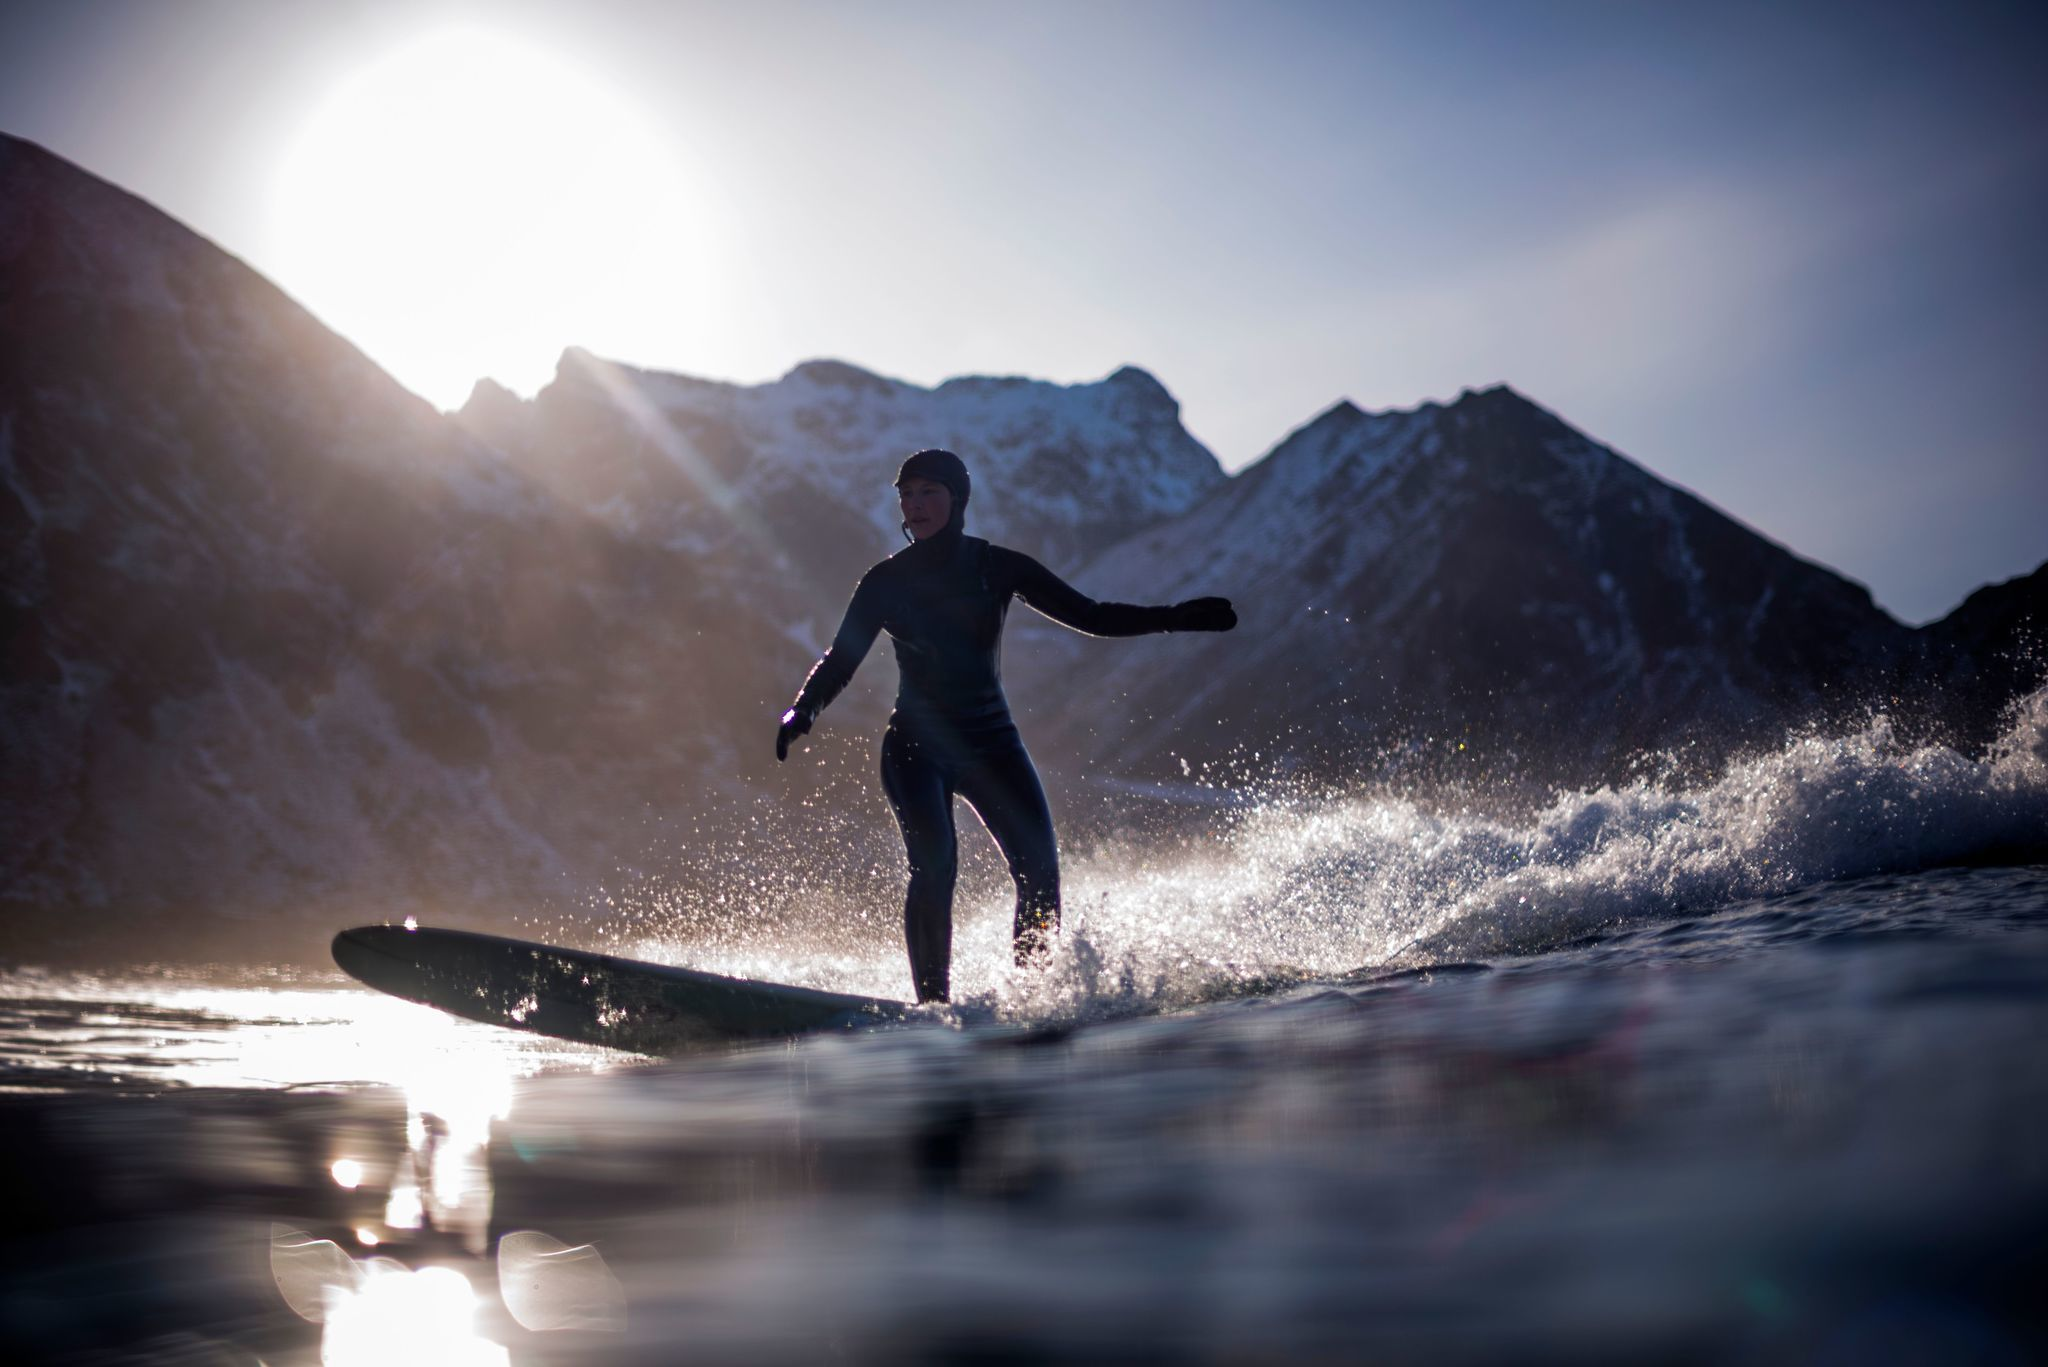 TOPSHOT-NORWAY-LIFESTYLE-TOURISM-SURFING-WEATHER-ARCTIC